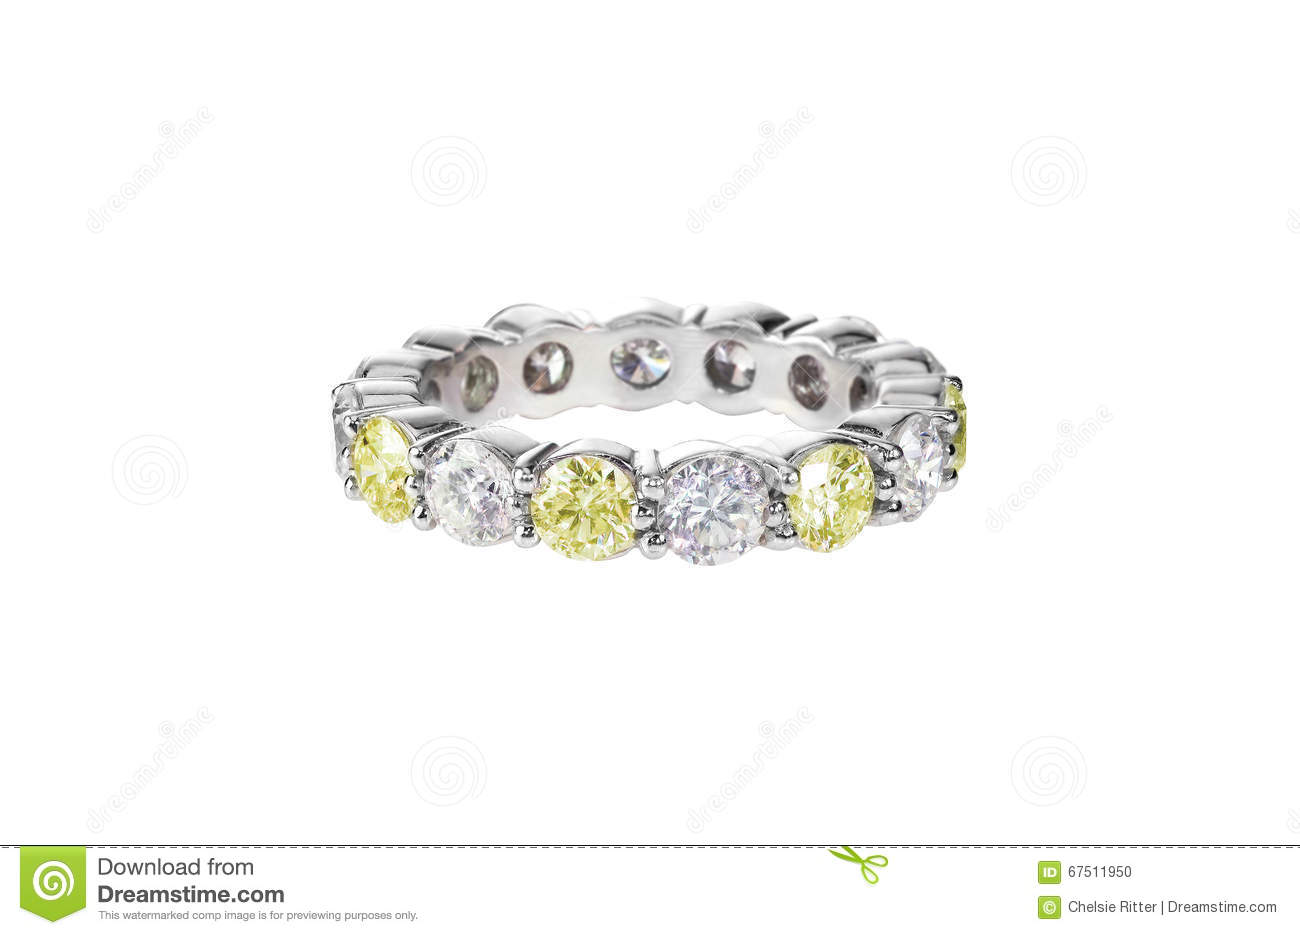 diamond yellow wedding rings black buy and jewelry colored shop stone color online banner main desktop engagement save now canary fancy white